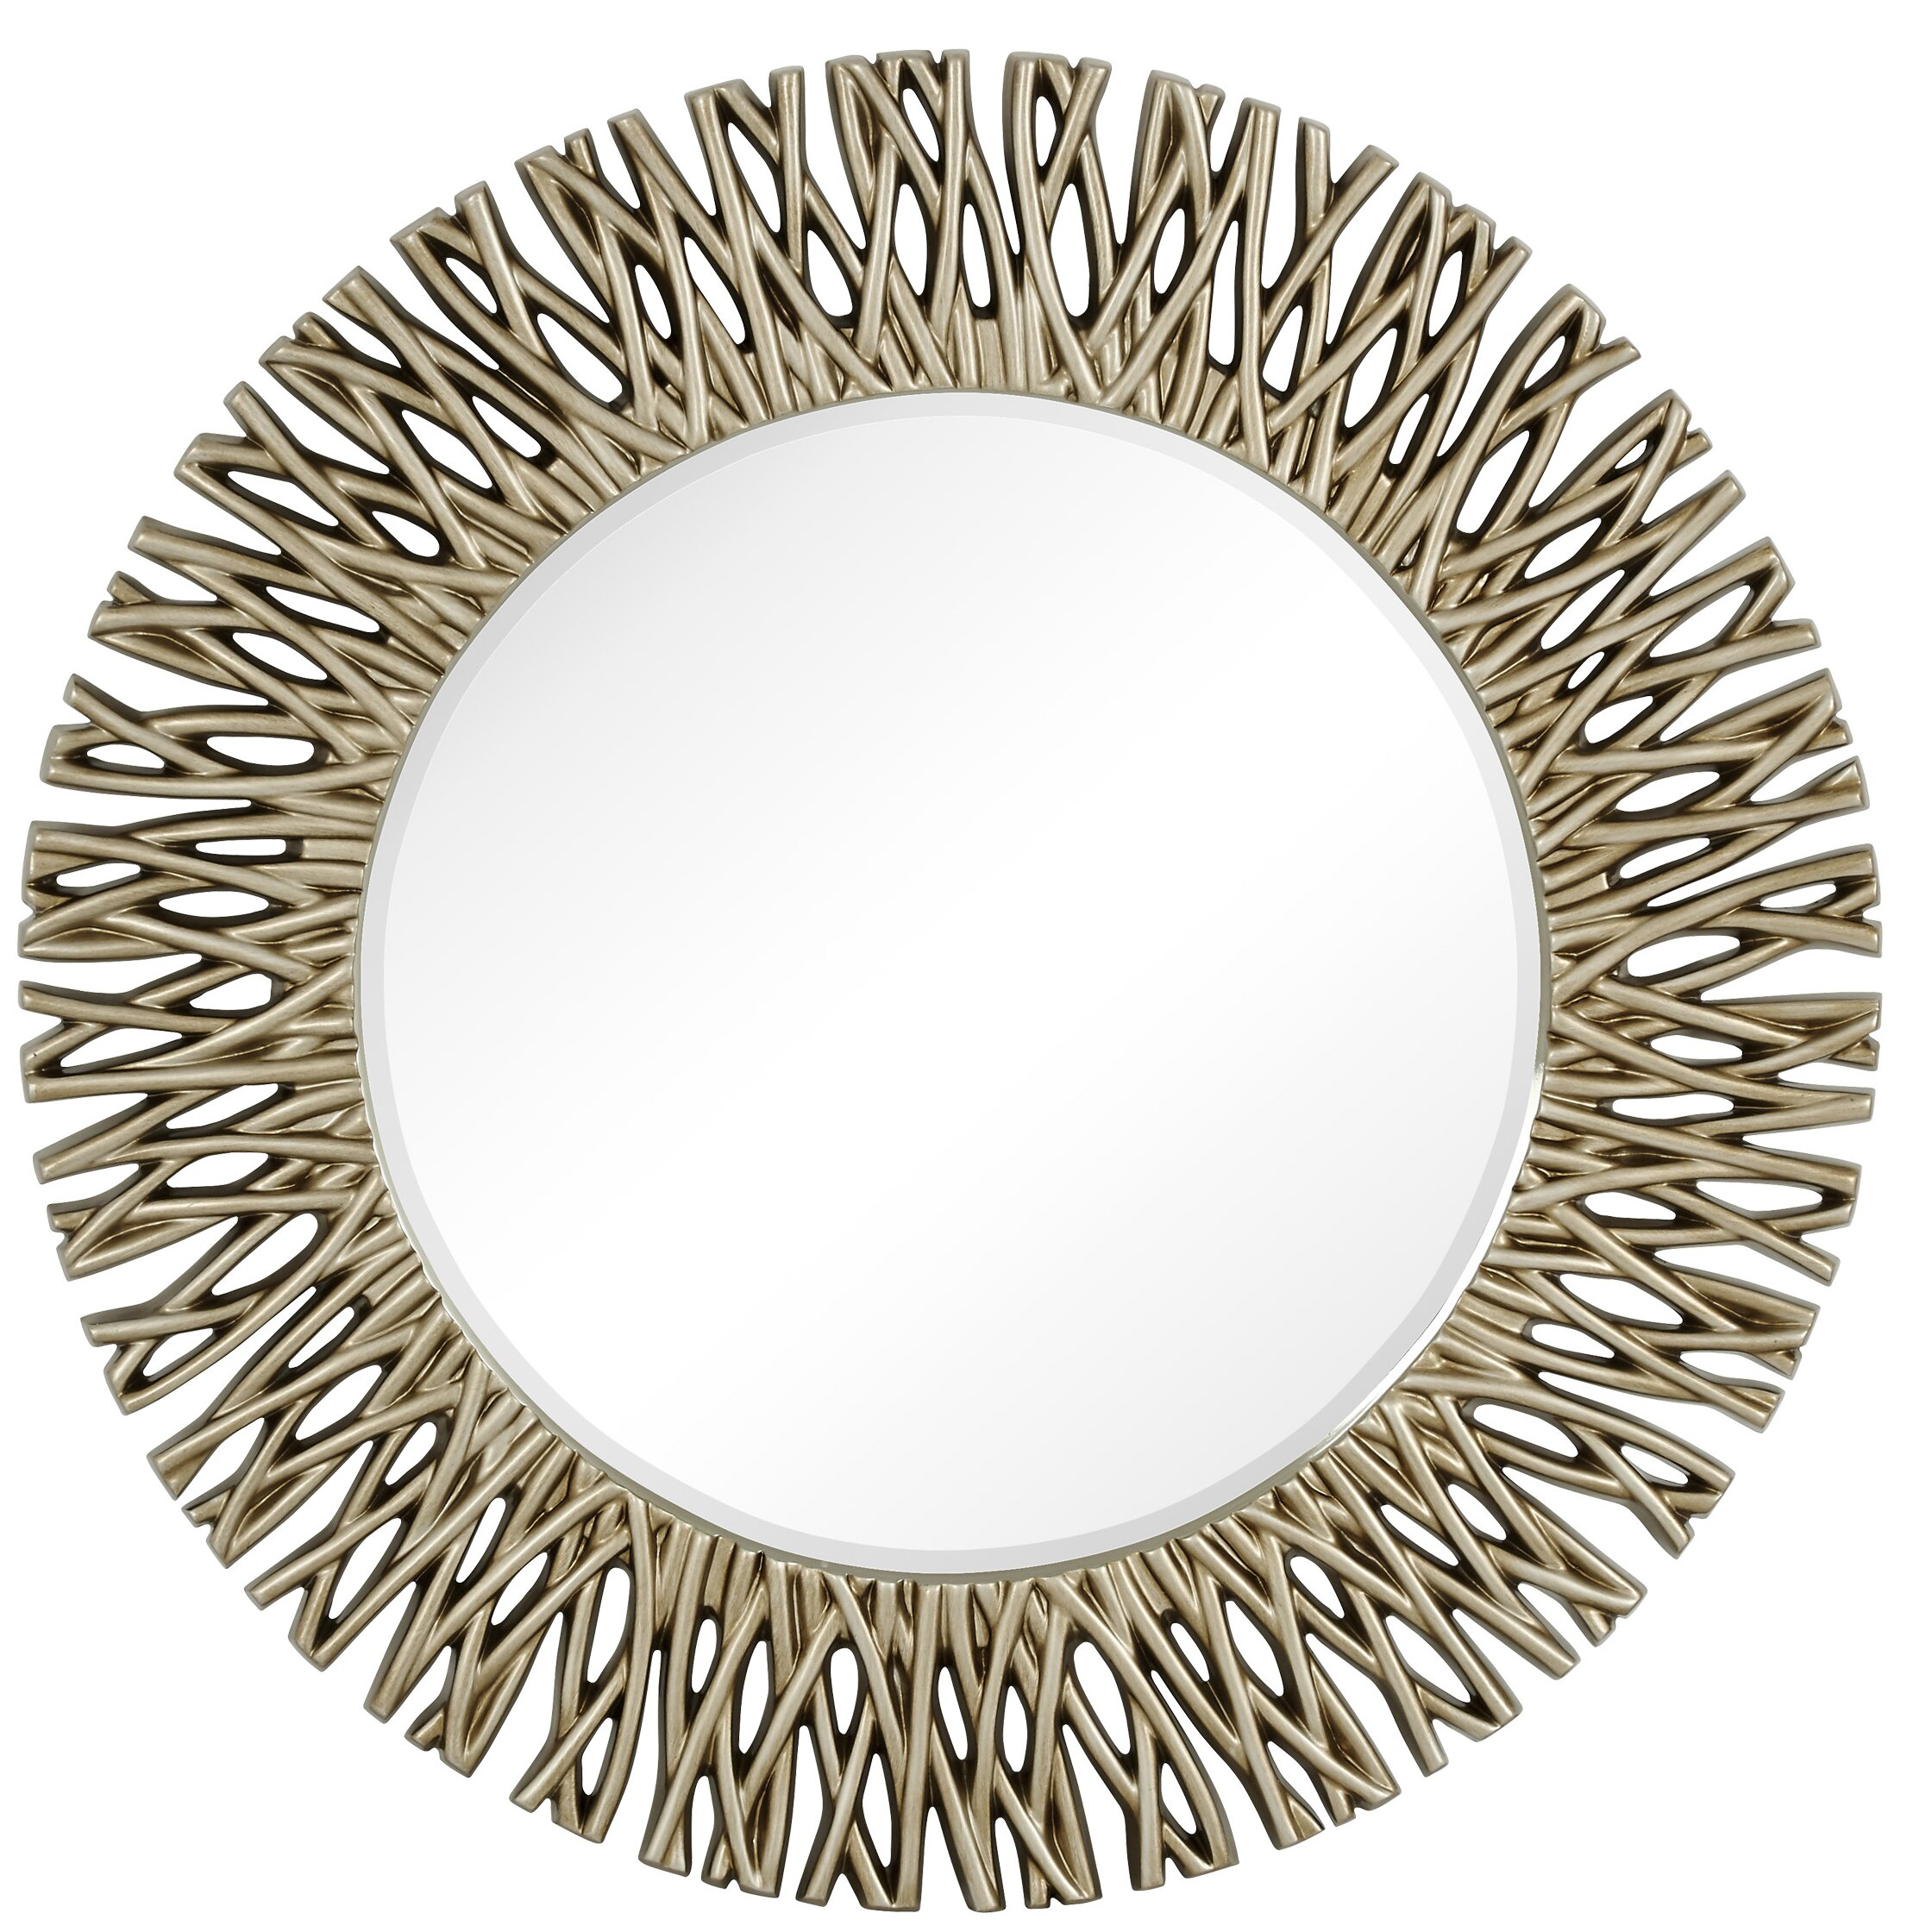 Majestic Mirror Large Round Antique Silver Decorative Beveled - Large decorative wall mirror